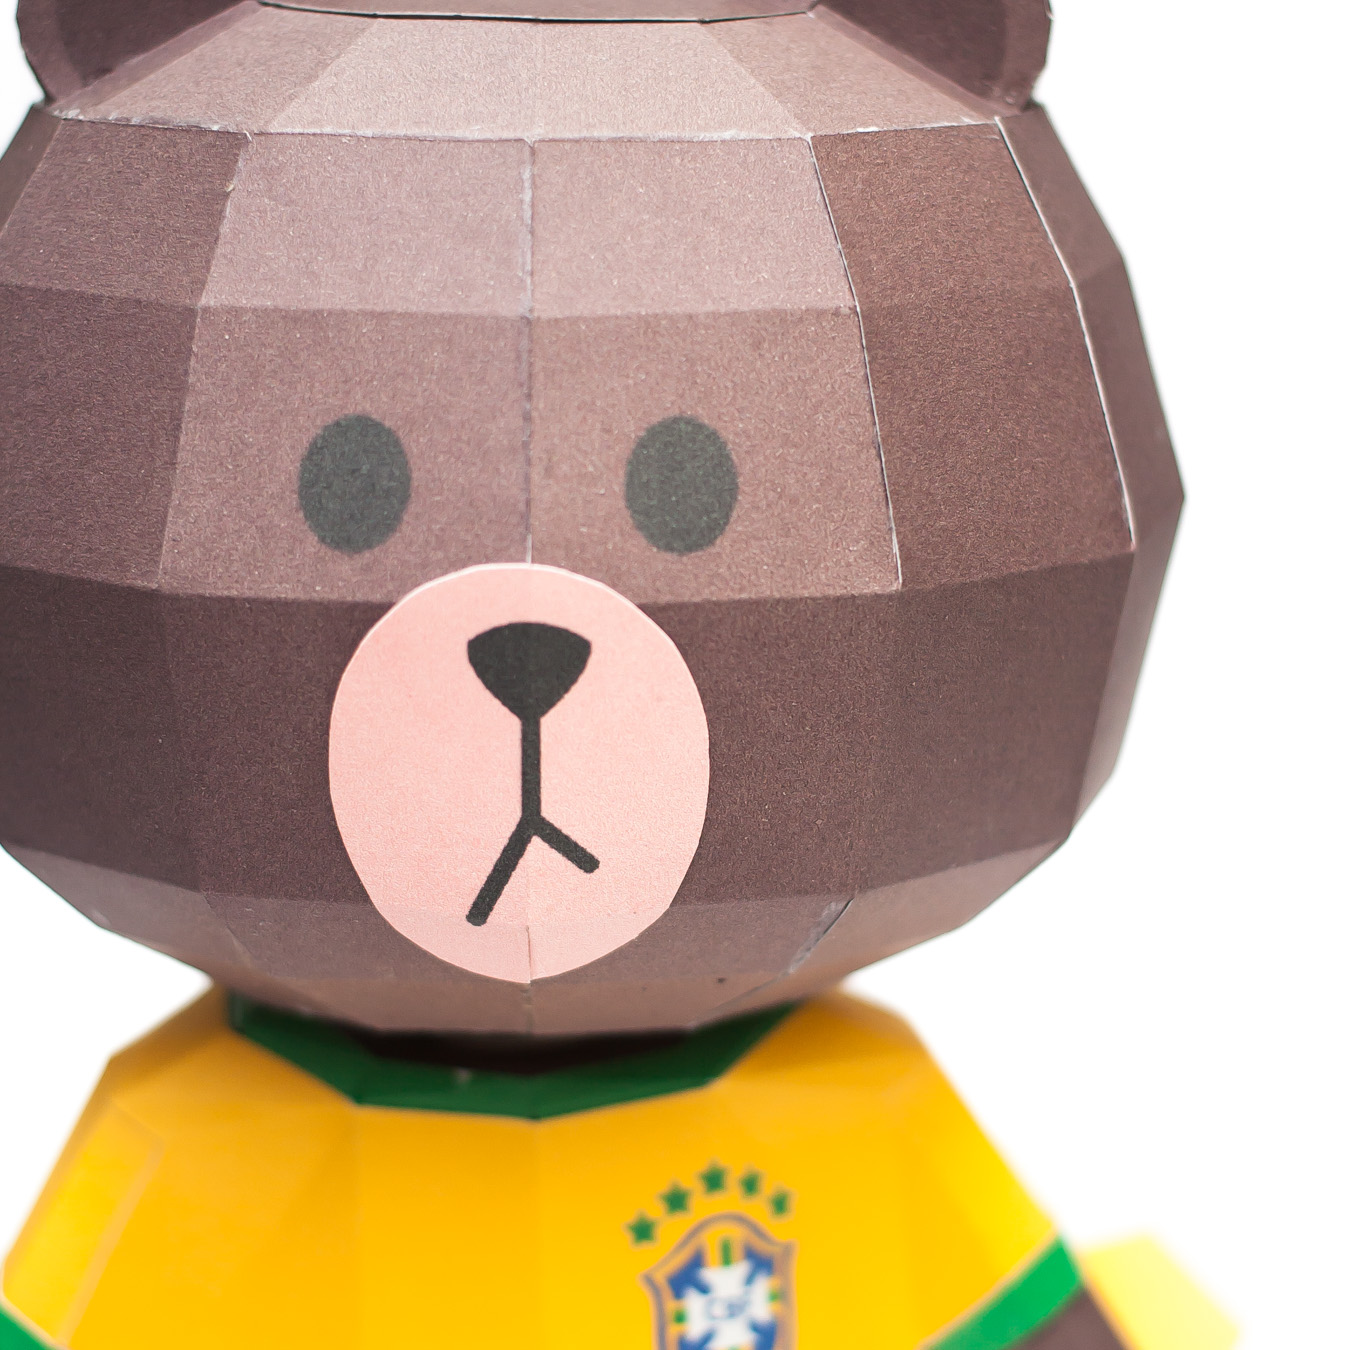 LINE Brown Bear in FIFA World Cup 2014 Brazil Uniform Papercraft Model Finished 002